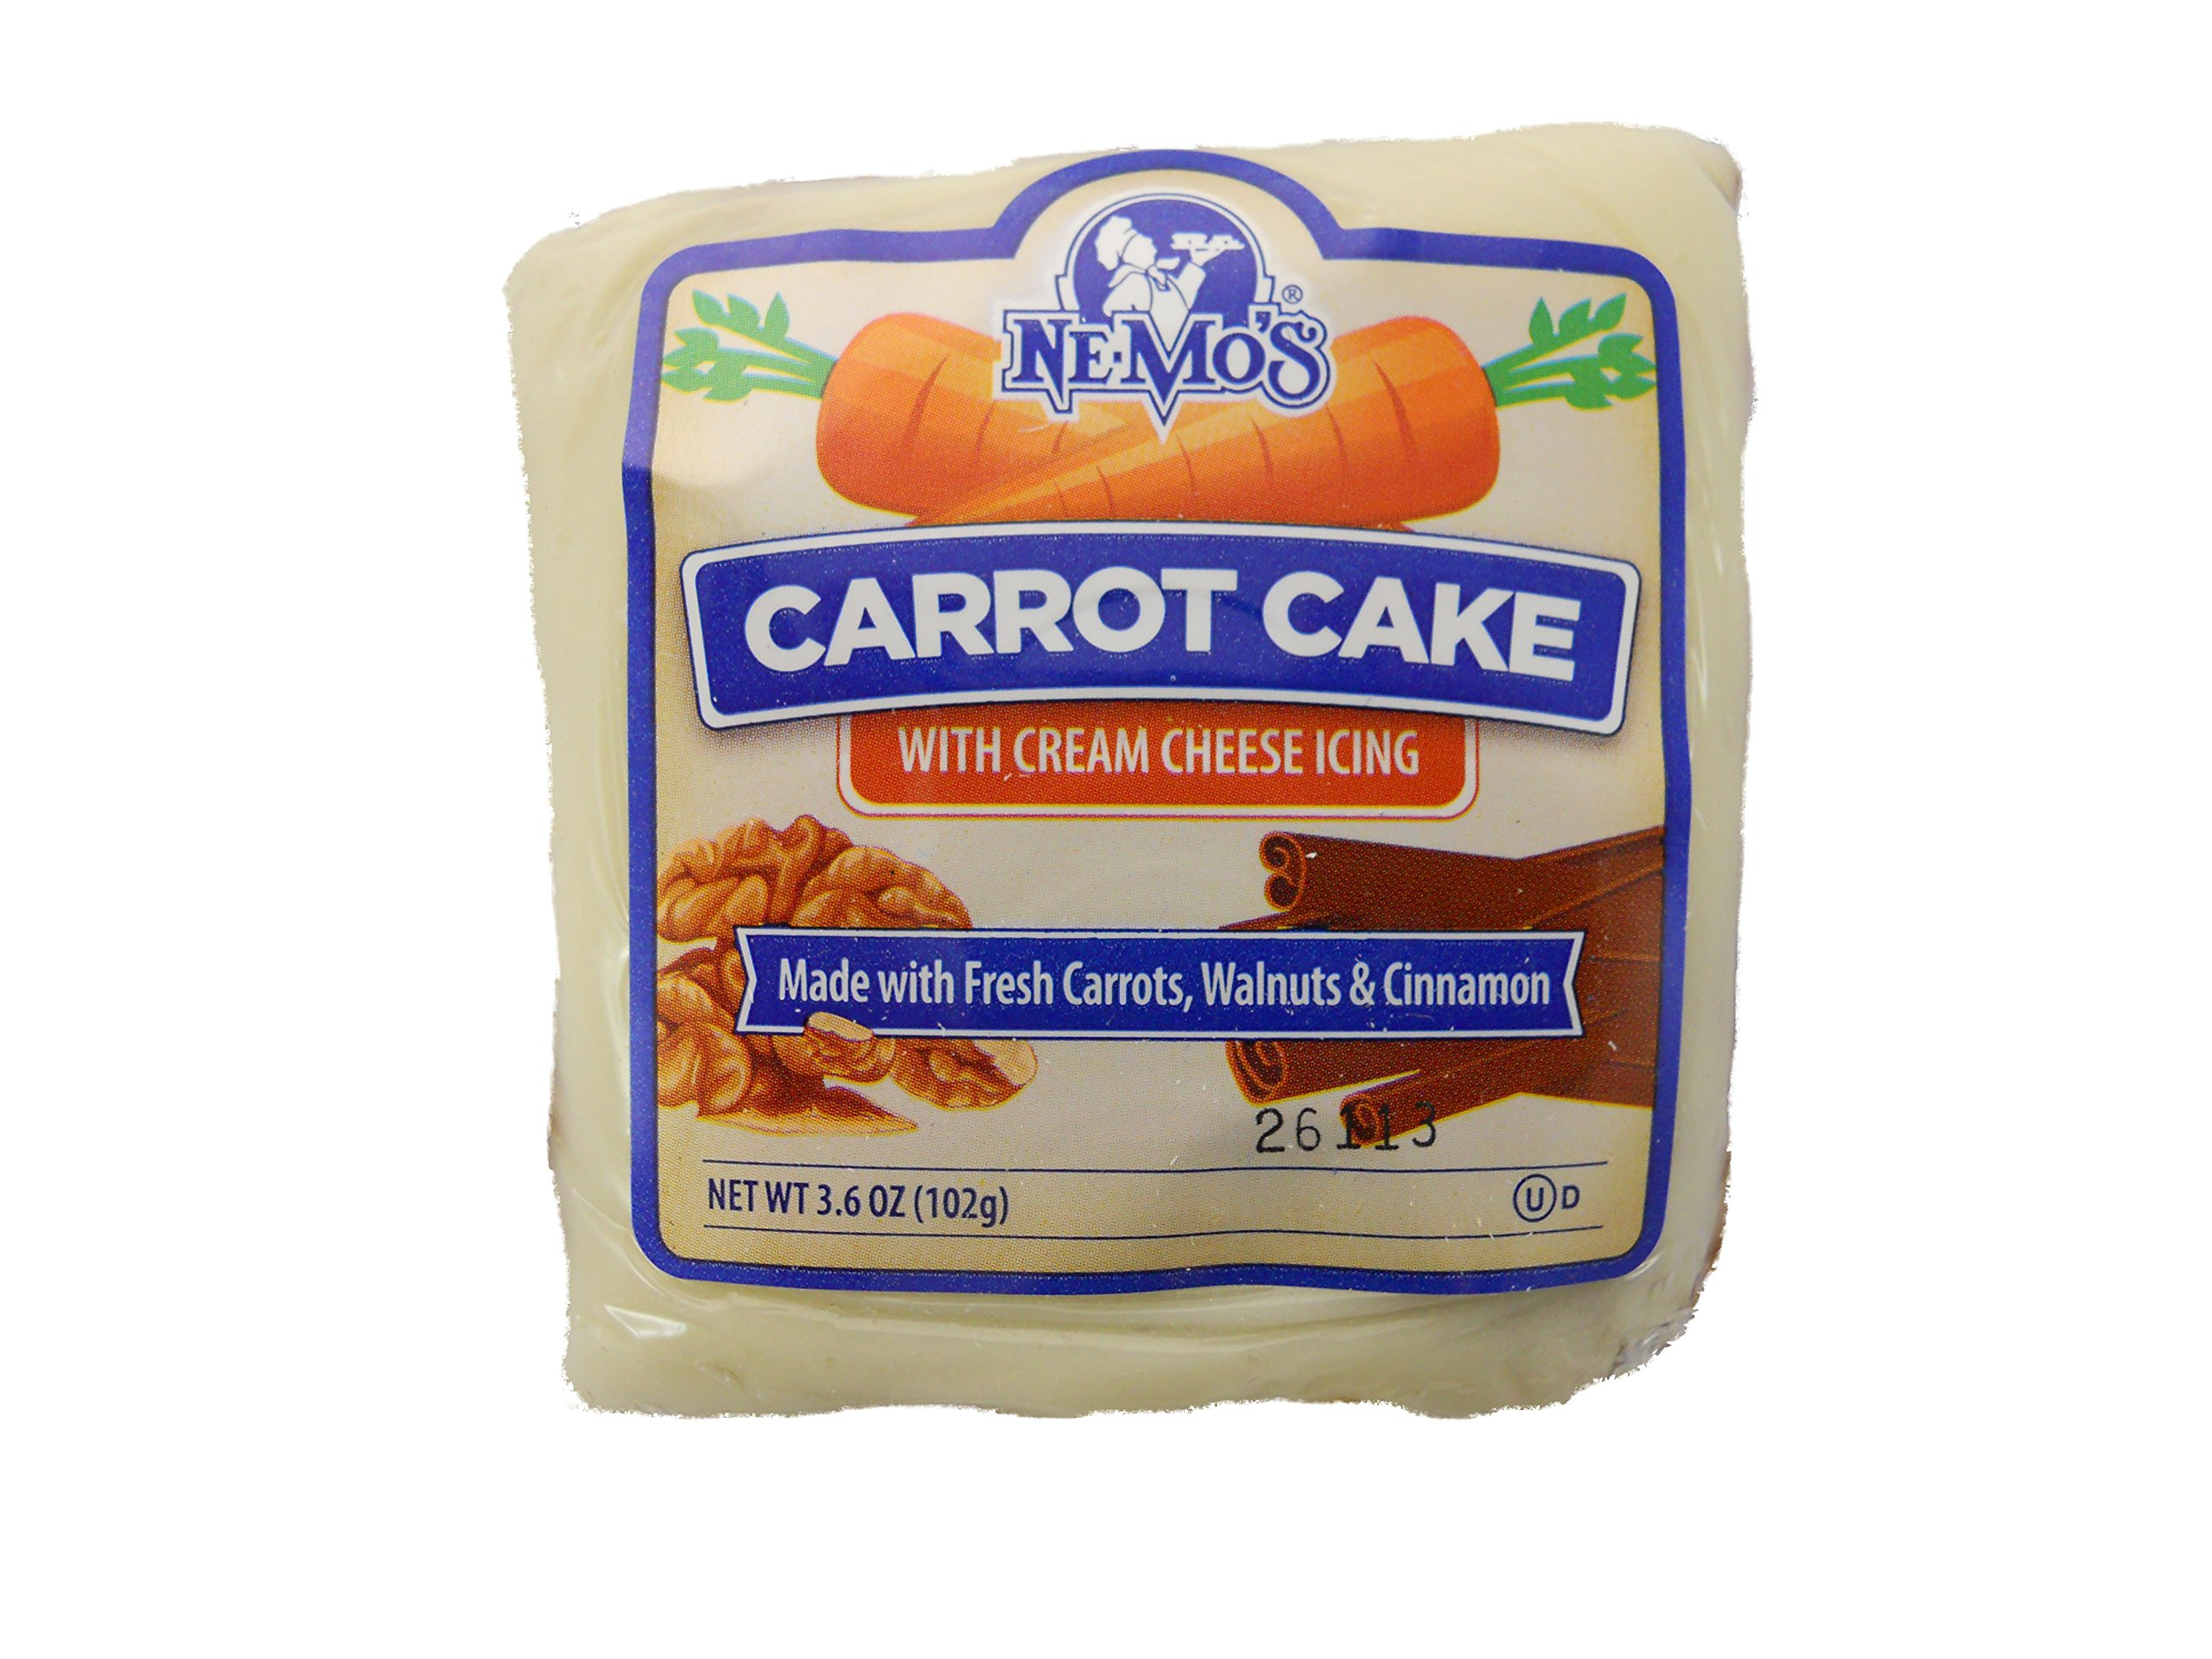 Nemo's Carrot Cake Square, 3.6 oz. (36 count)